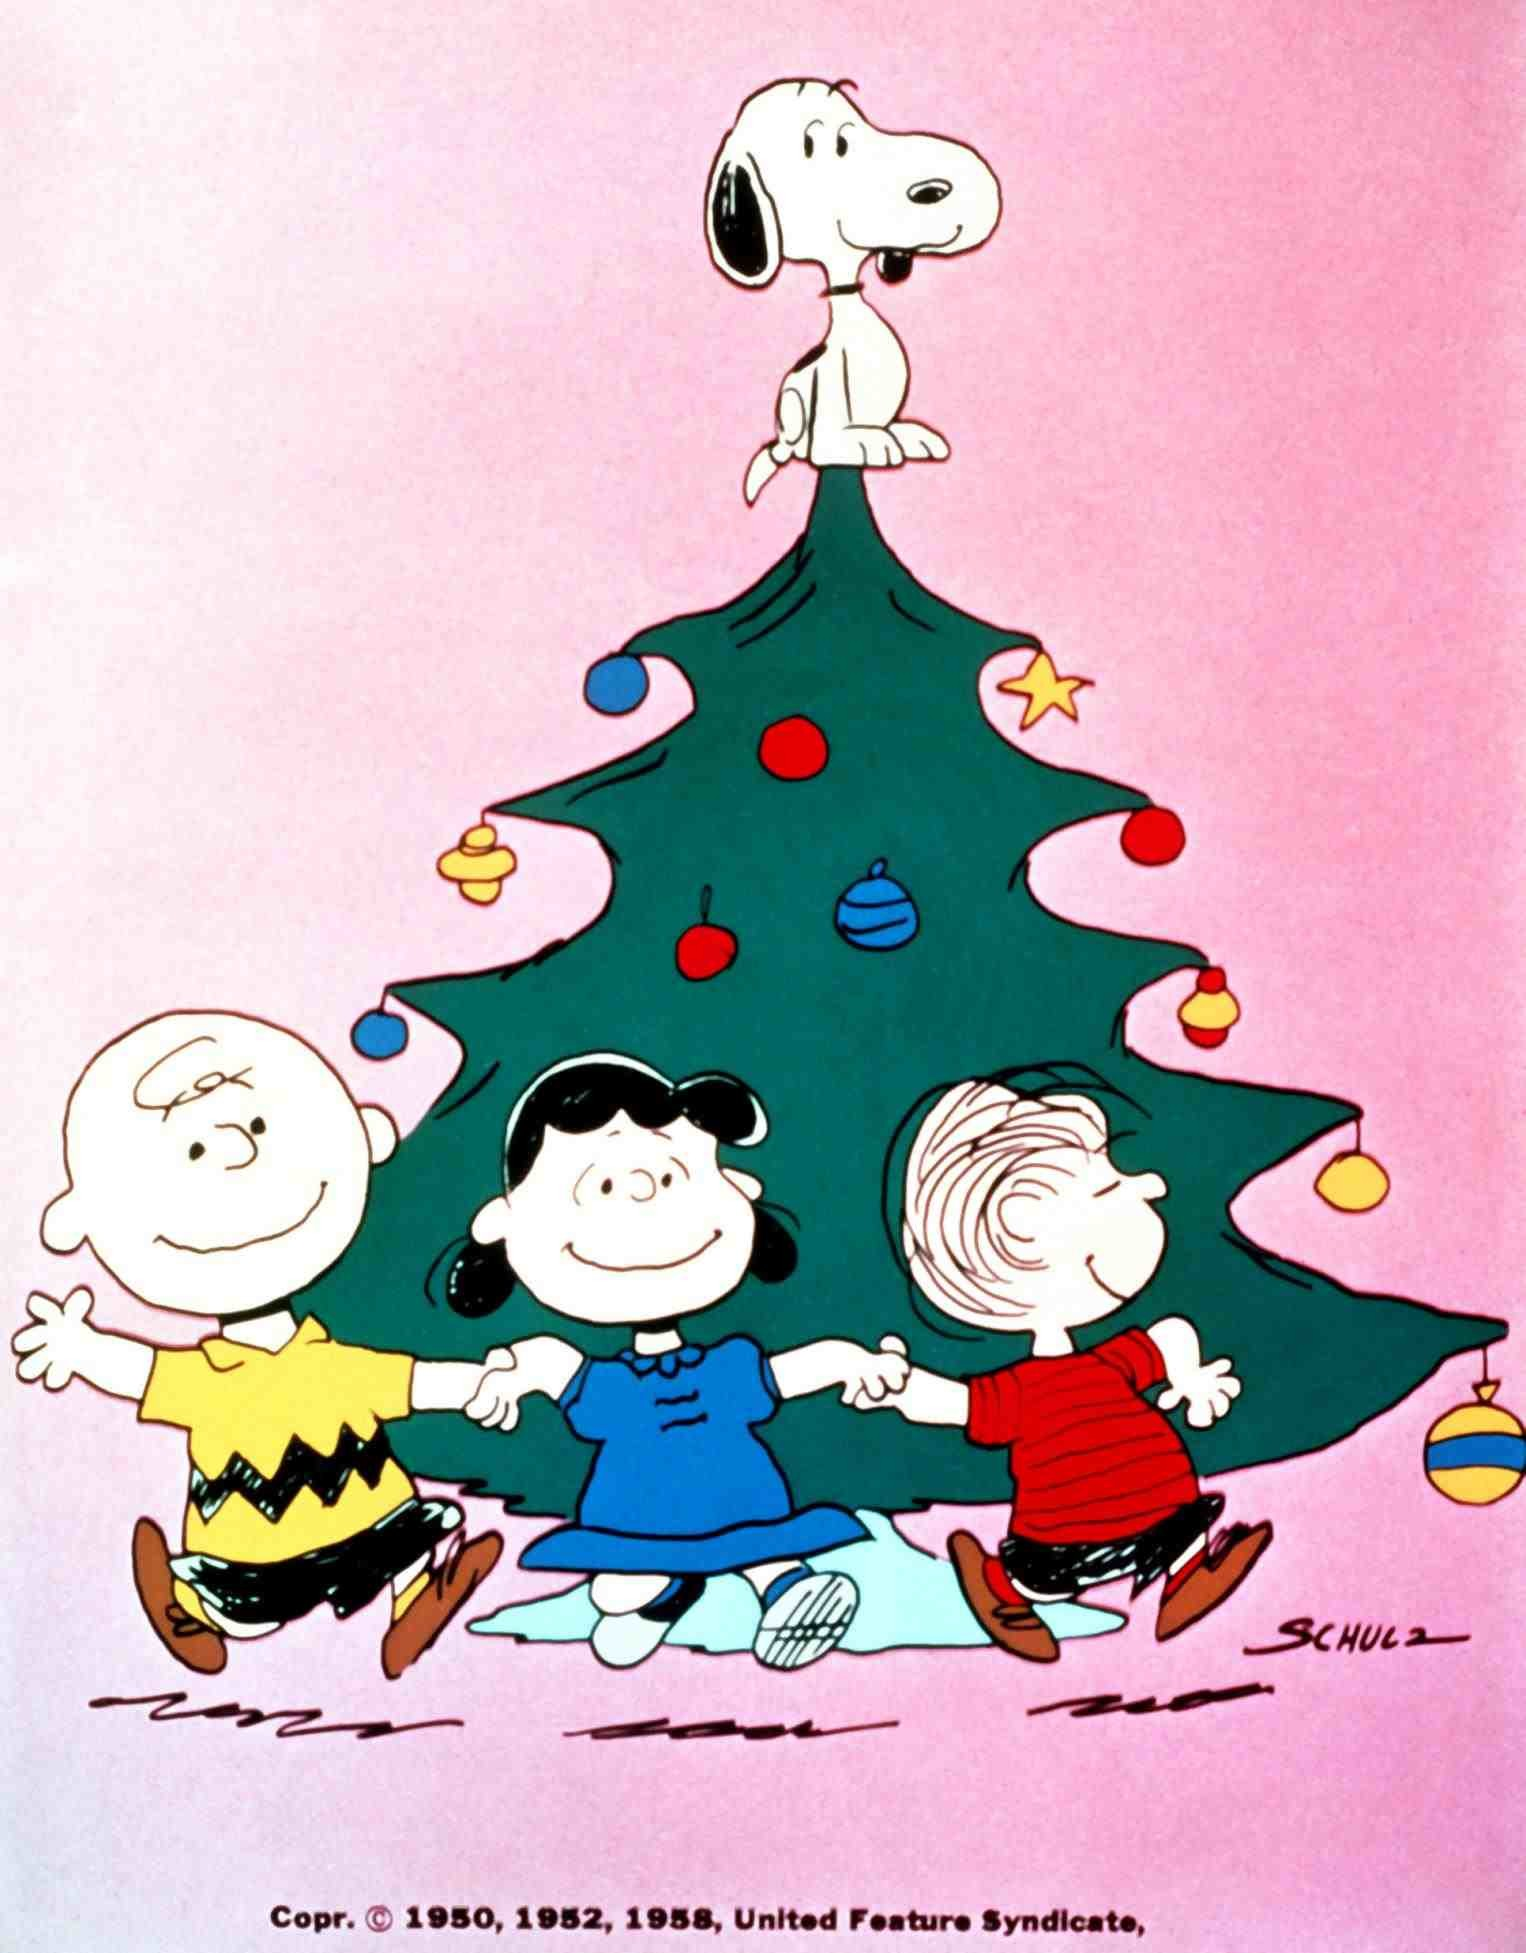 1920x1280 photo collection snoopy wallpapers 2017 wallpaper the peanuts movie snoopy charlie brown movies 7146 - Peanuts Christmas Movie